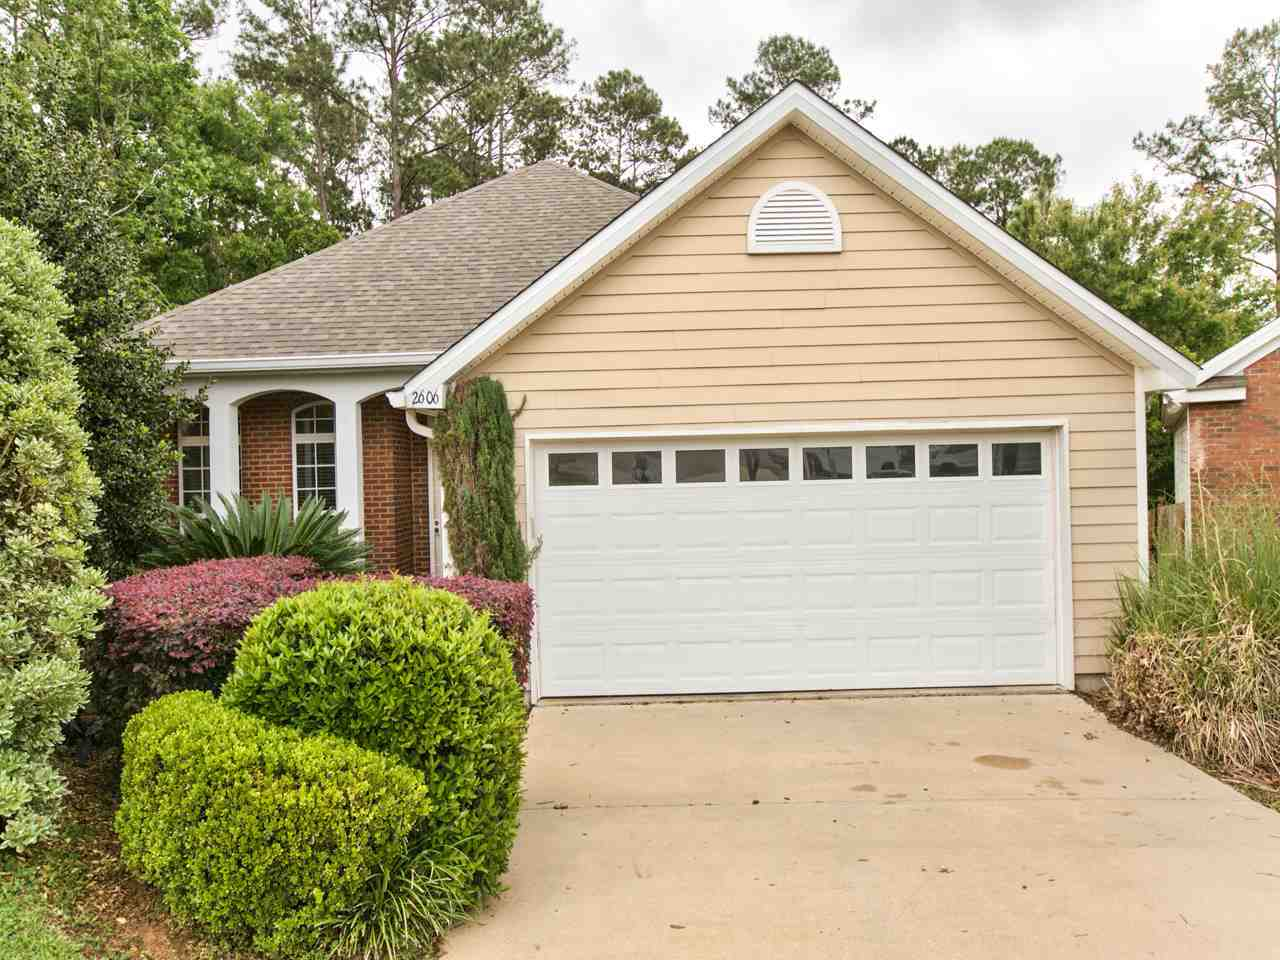 $235,000 - 4Br/2Ba -  for Sale in Glen At Golden Eagle, Tallahassee